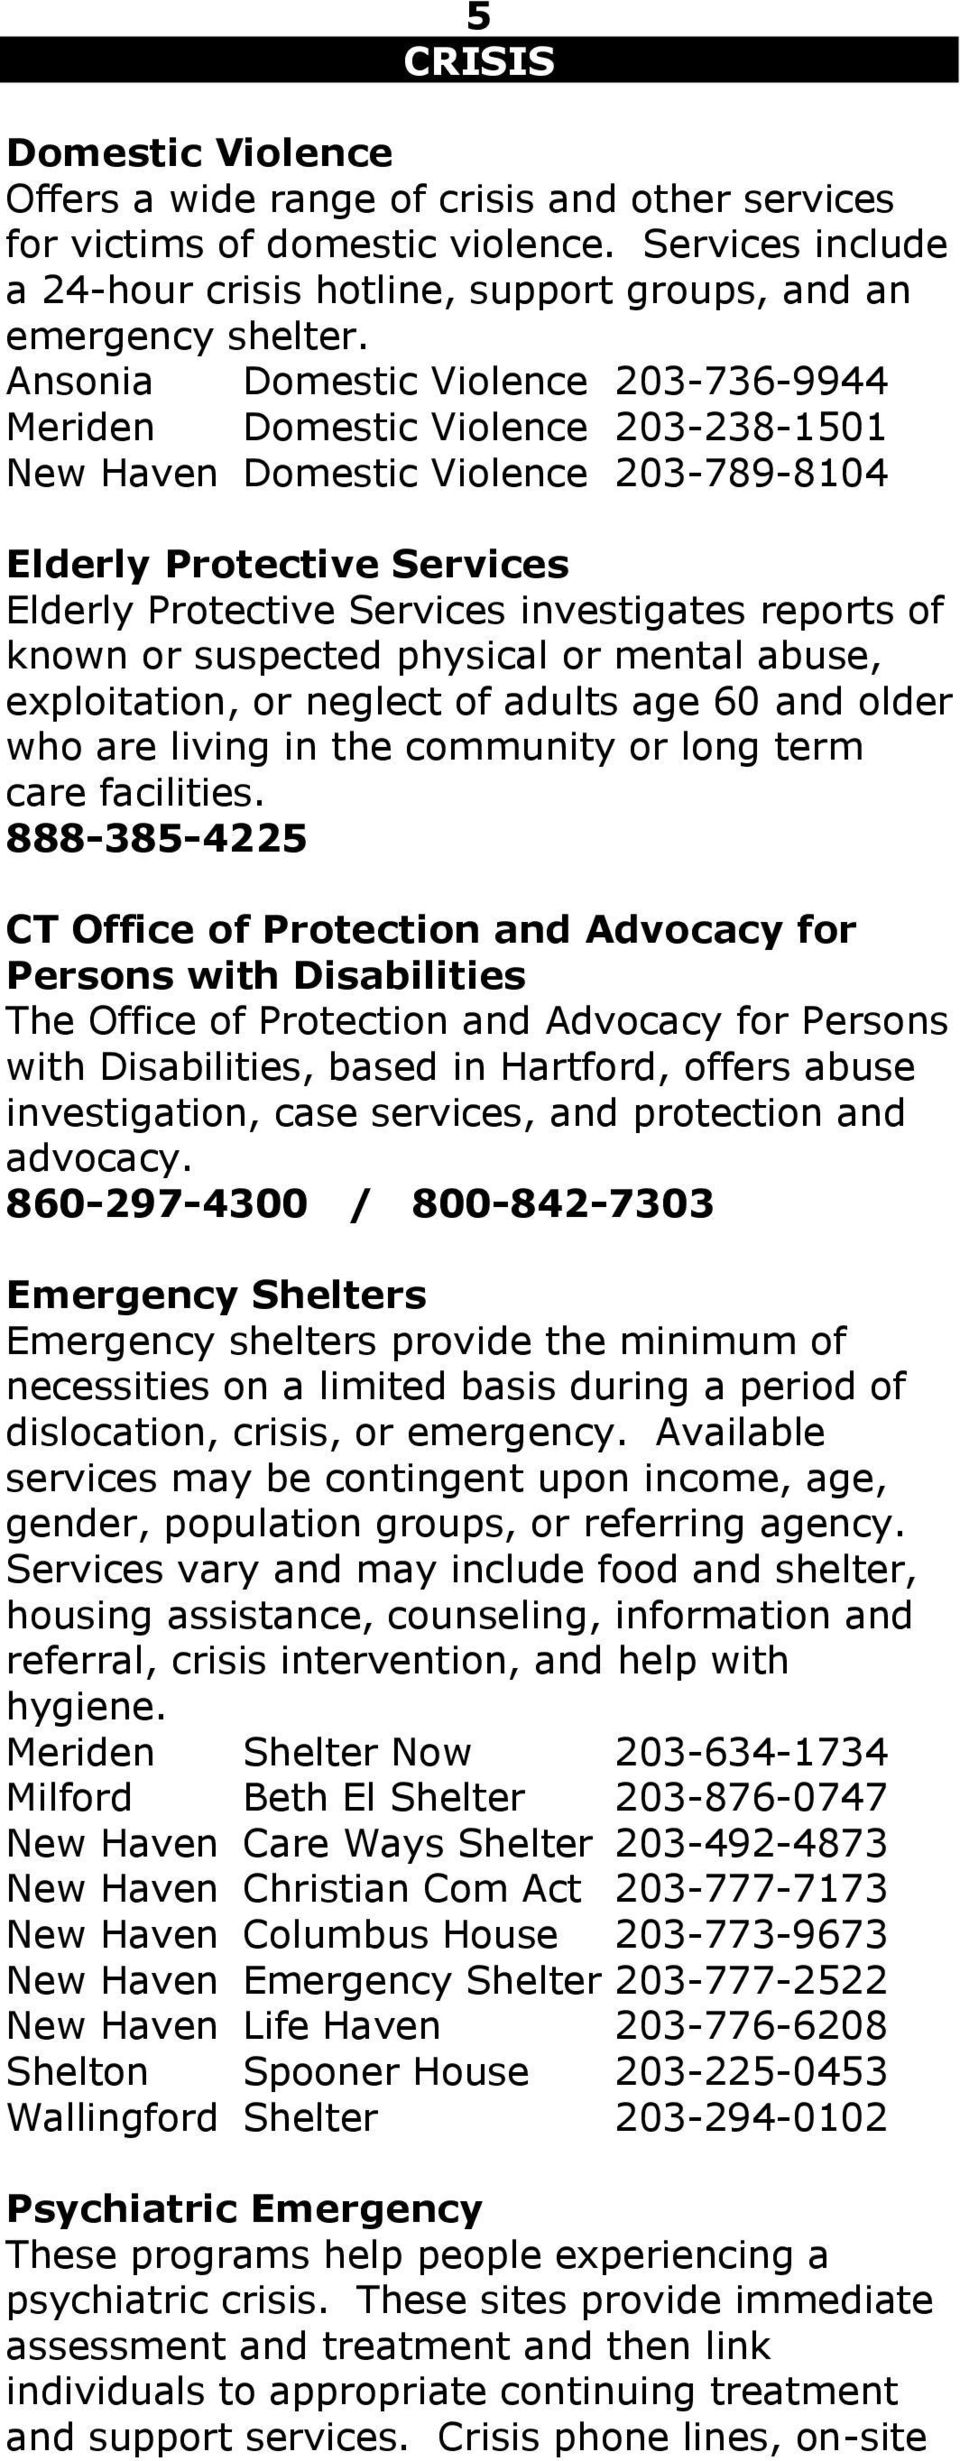 known or suspected physical or mental abuse, exploitation, or neglect of adults age 60 and older who are living in the community or long term care facilities.